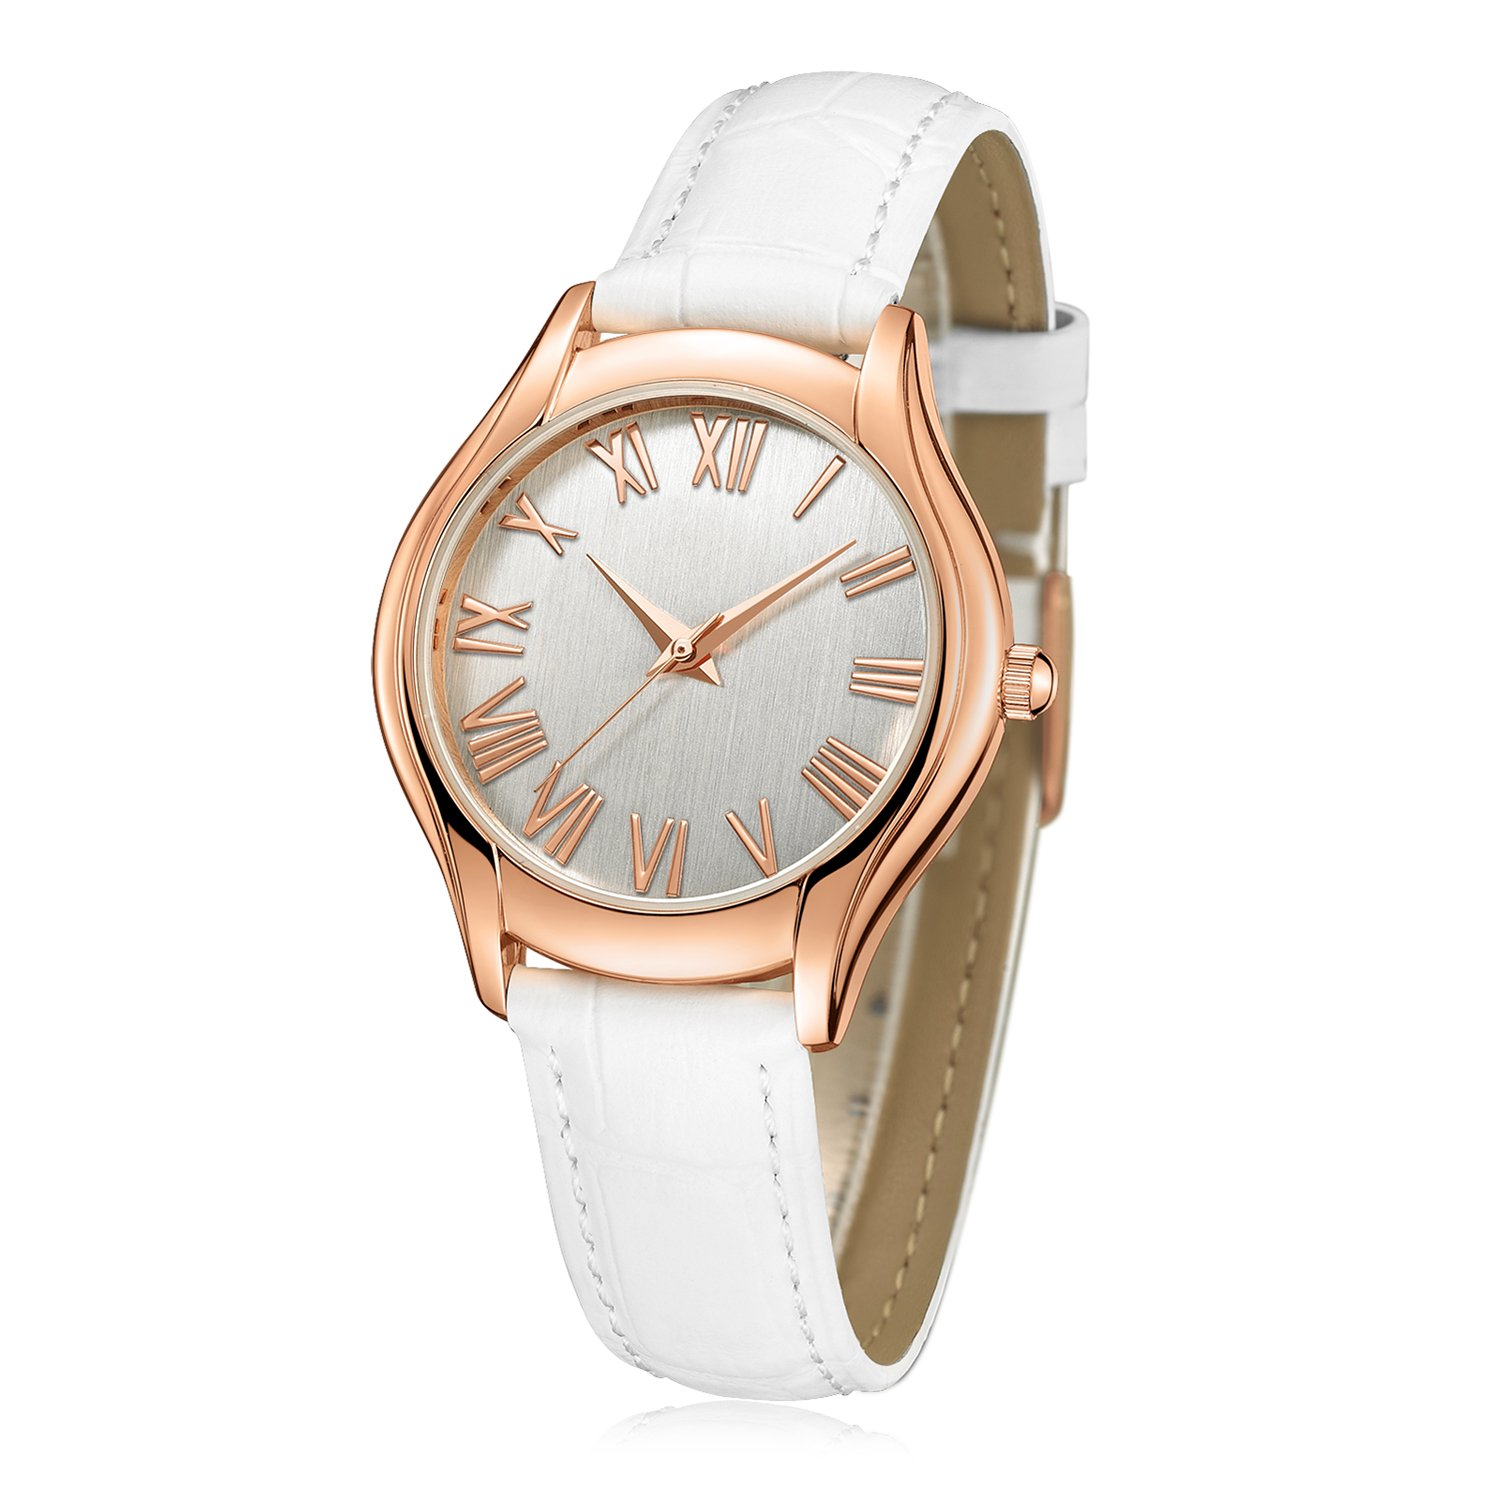 ATsense Women's Wrist Watch, Roman Numeral Rose Gold Simple Business Casual Fashion Classic Analog (Quartz) Watches With Genuine Leather Band C74615 (White)